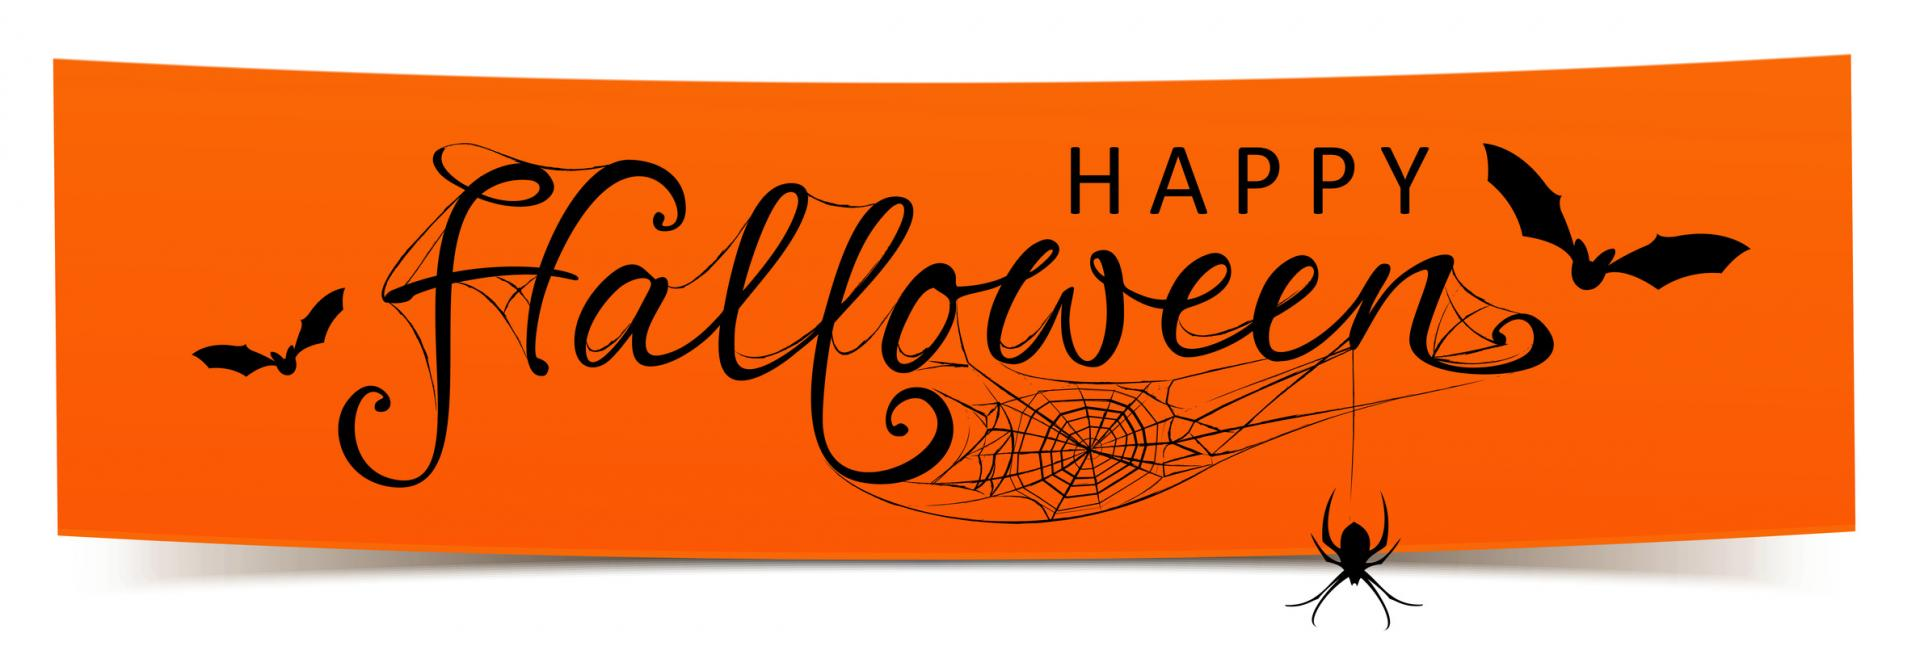 happy halloween medium en ligne